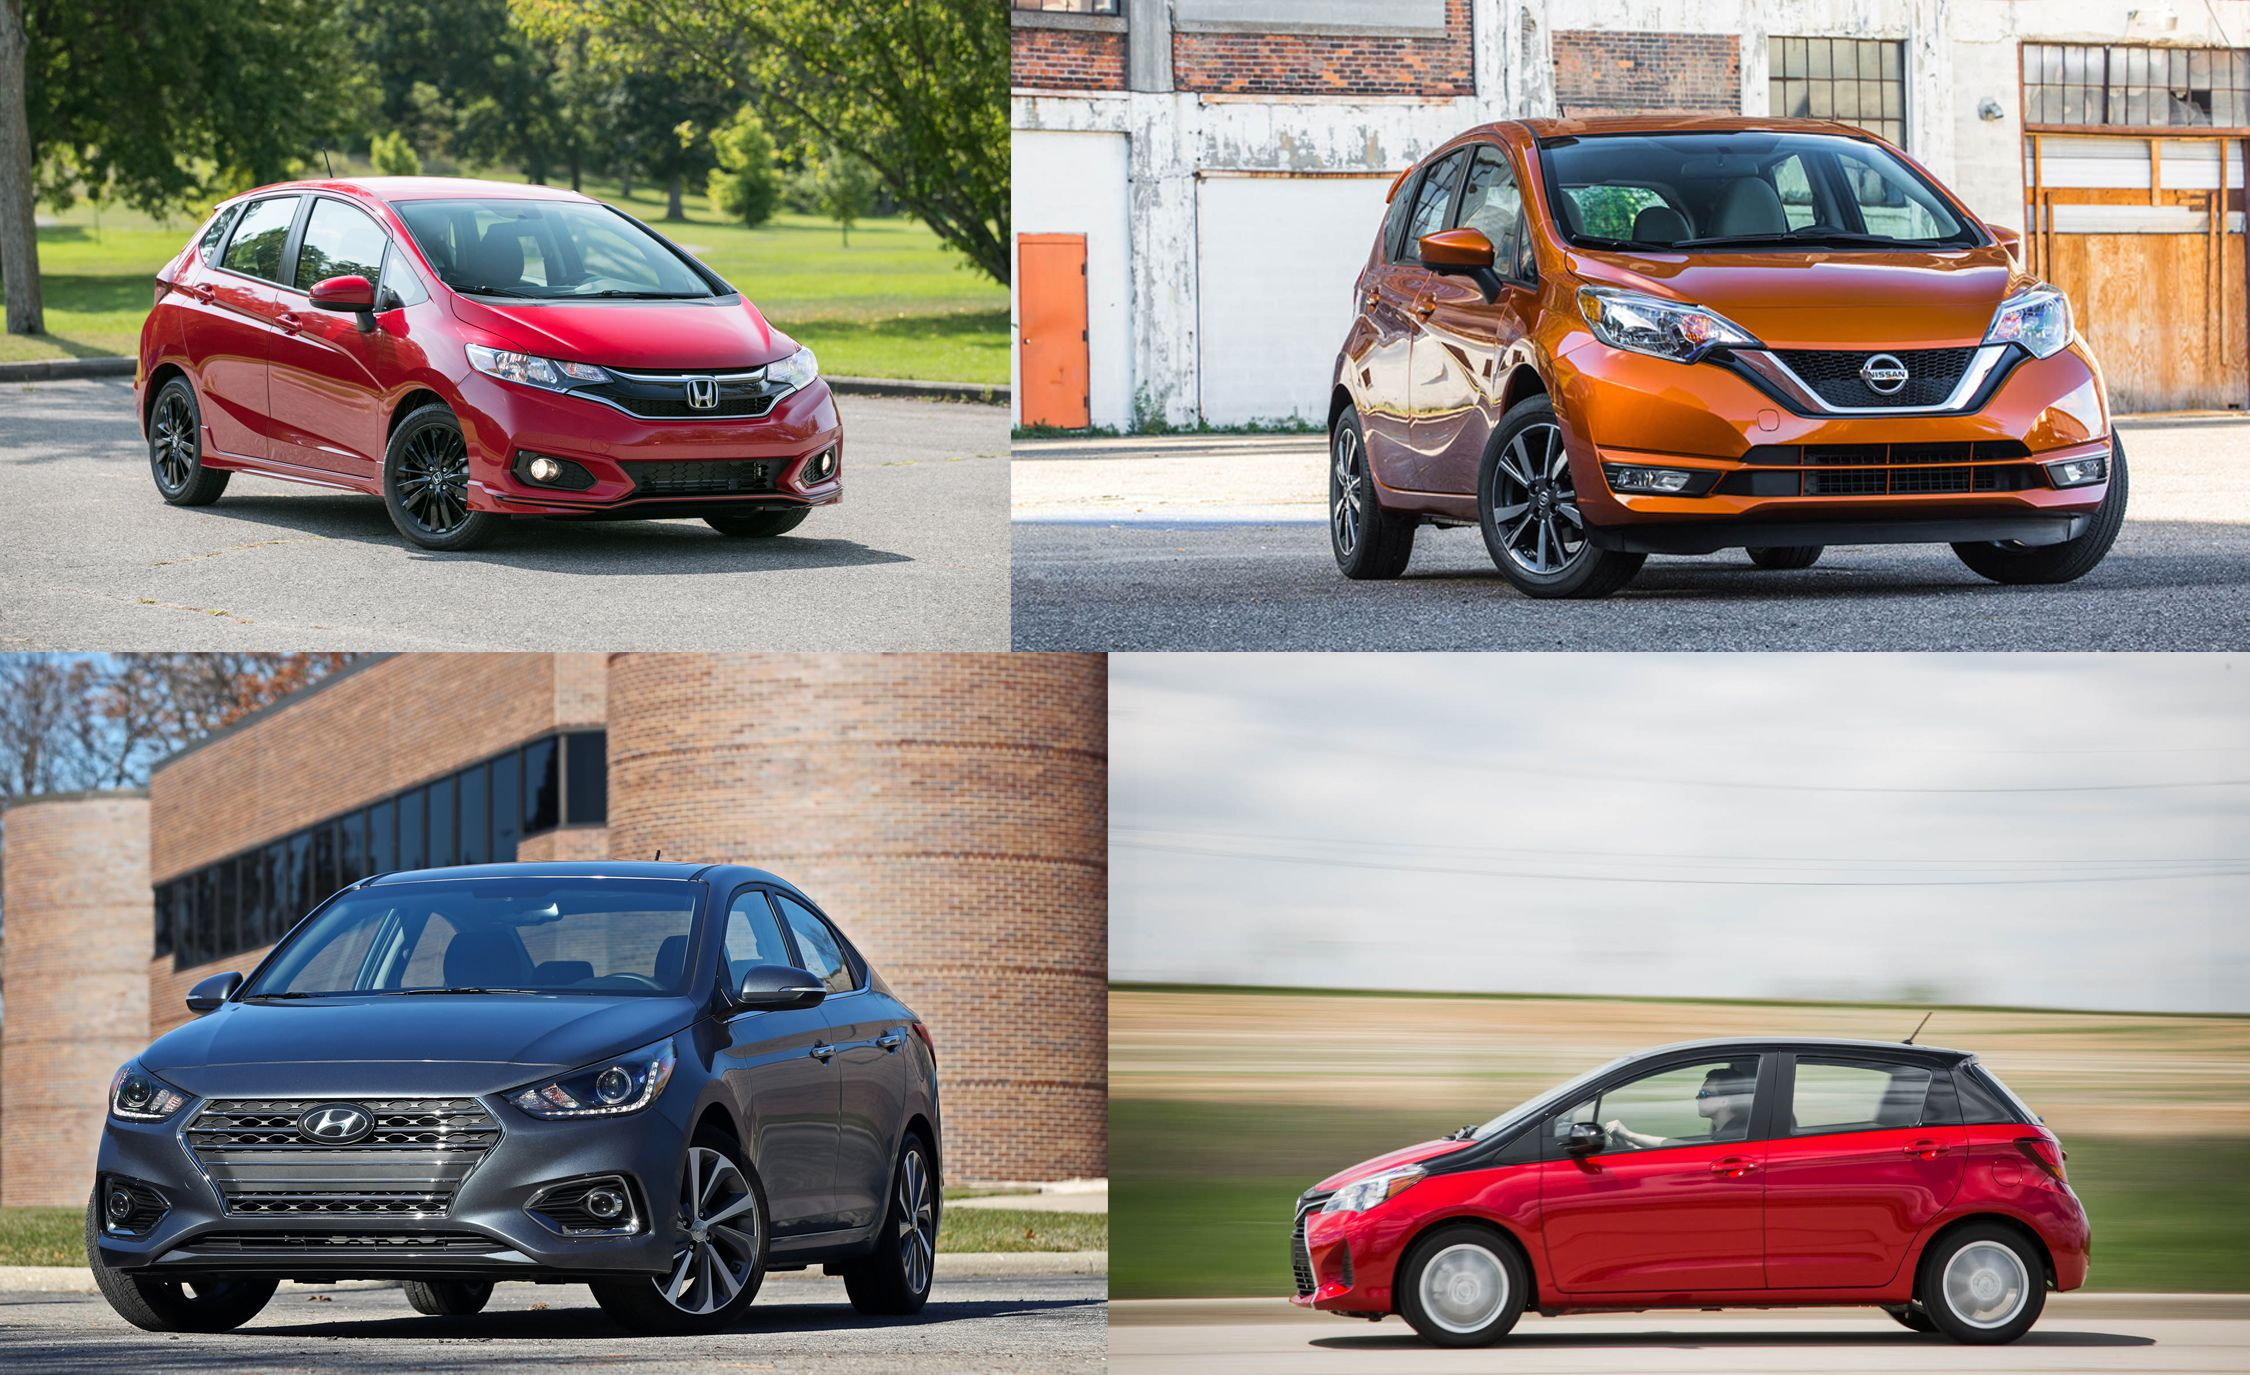 Thrifty Agenda Subcompacts Ranked From Worst To Best